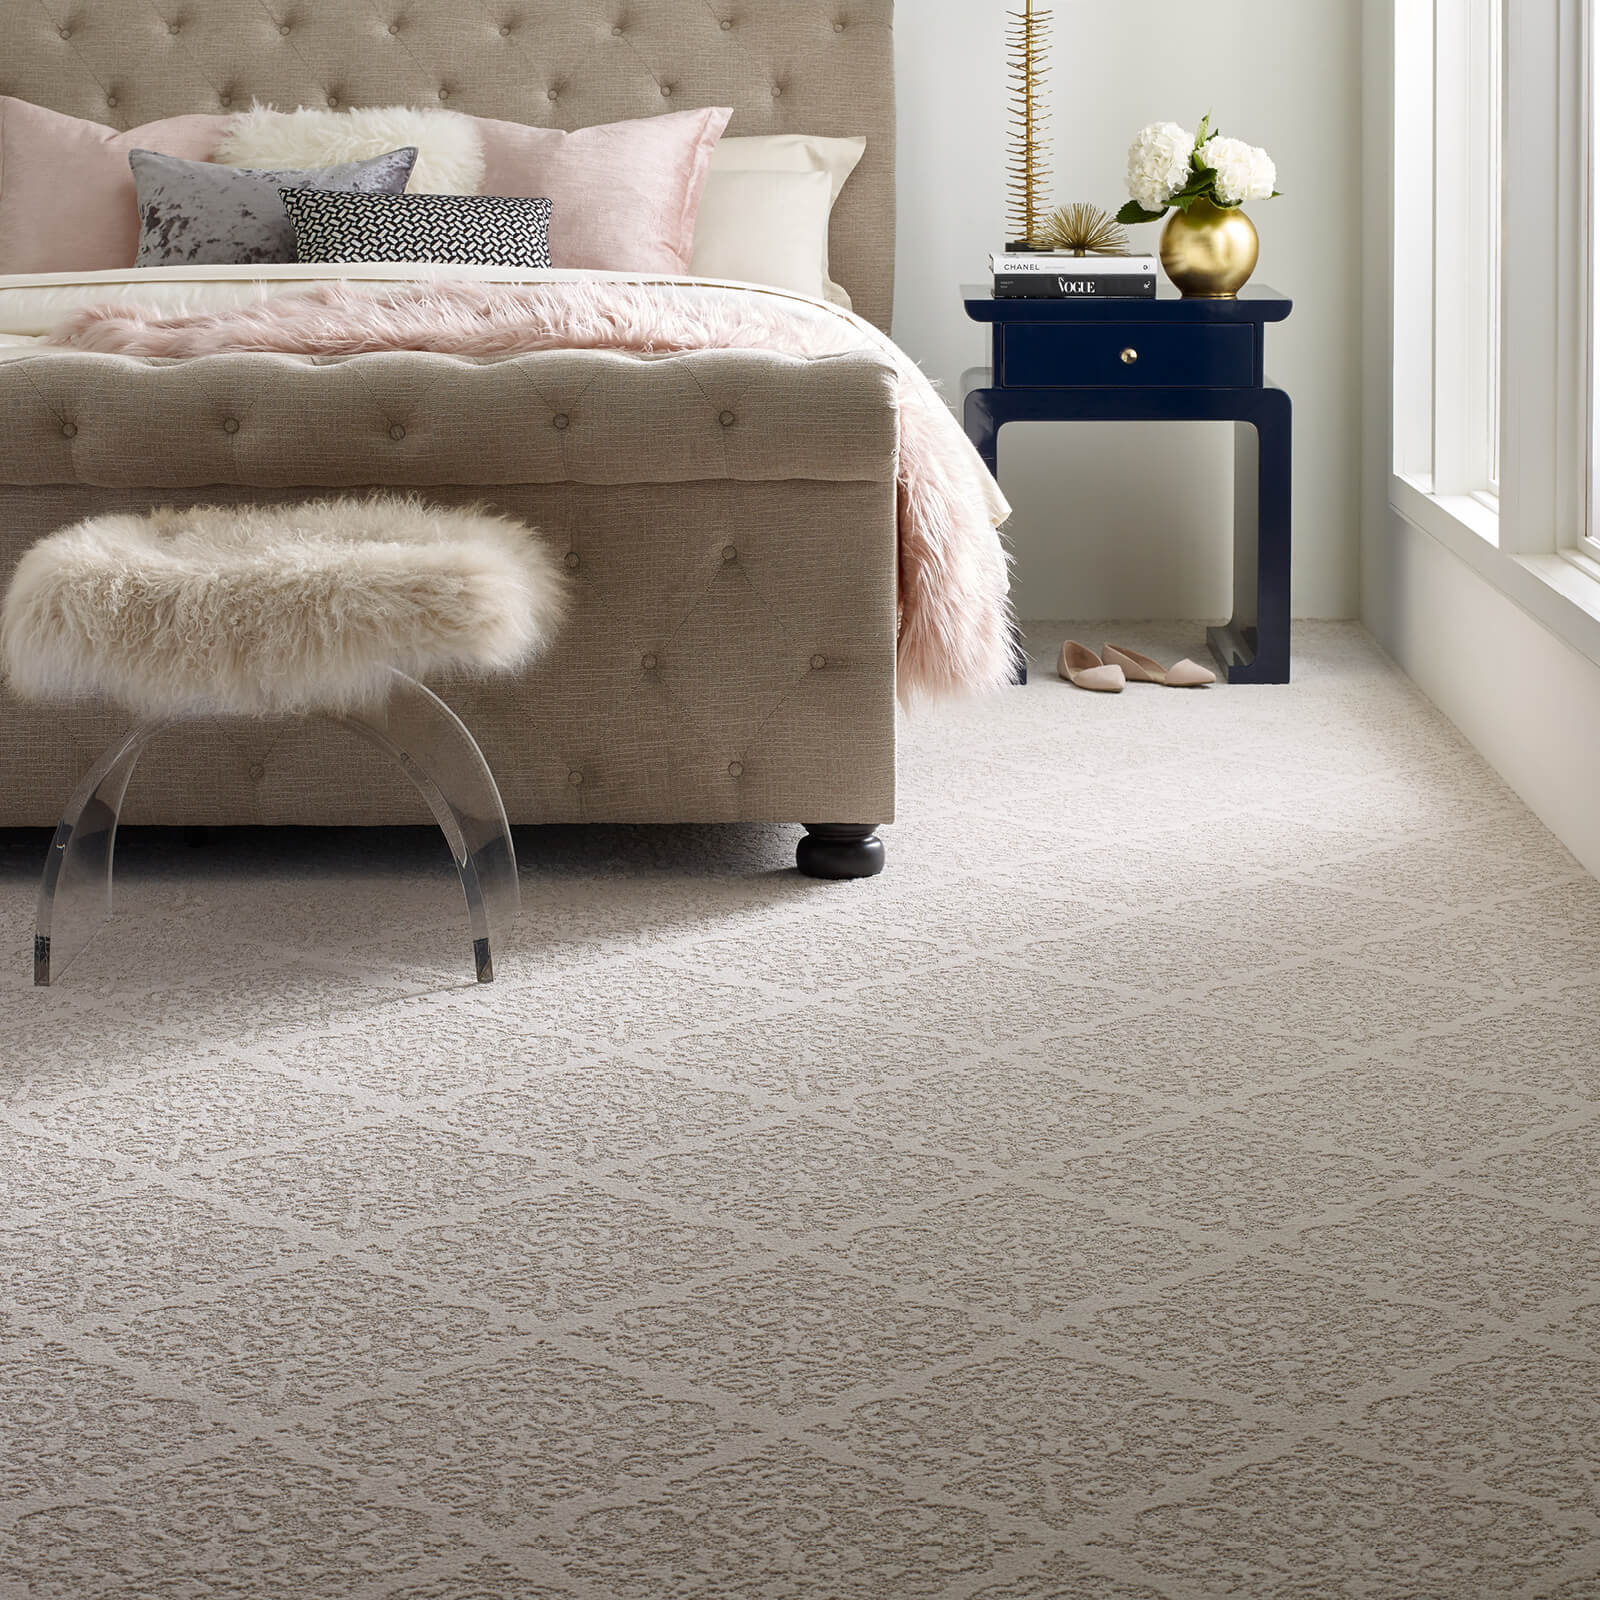 Carpet design | Georgia Flooring